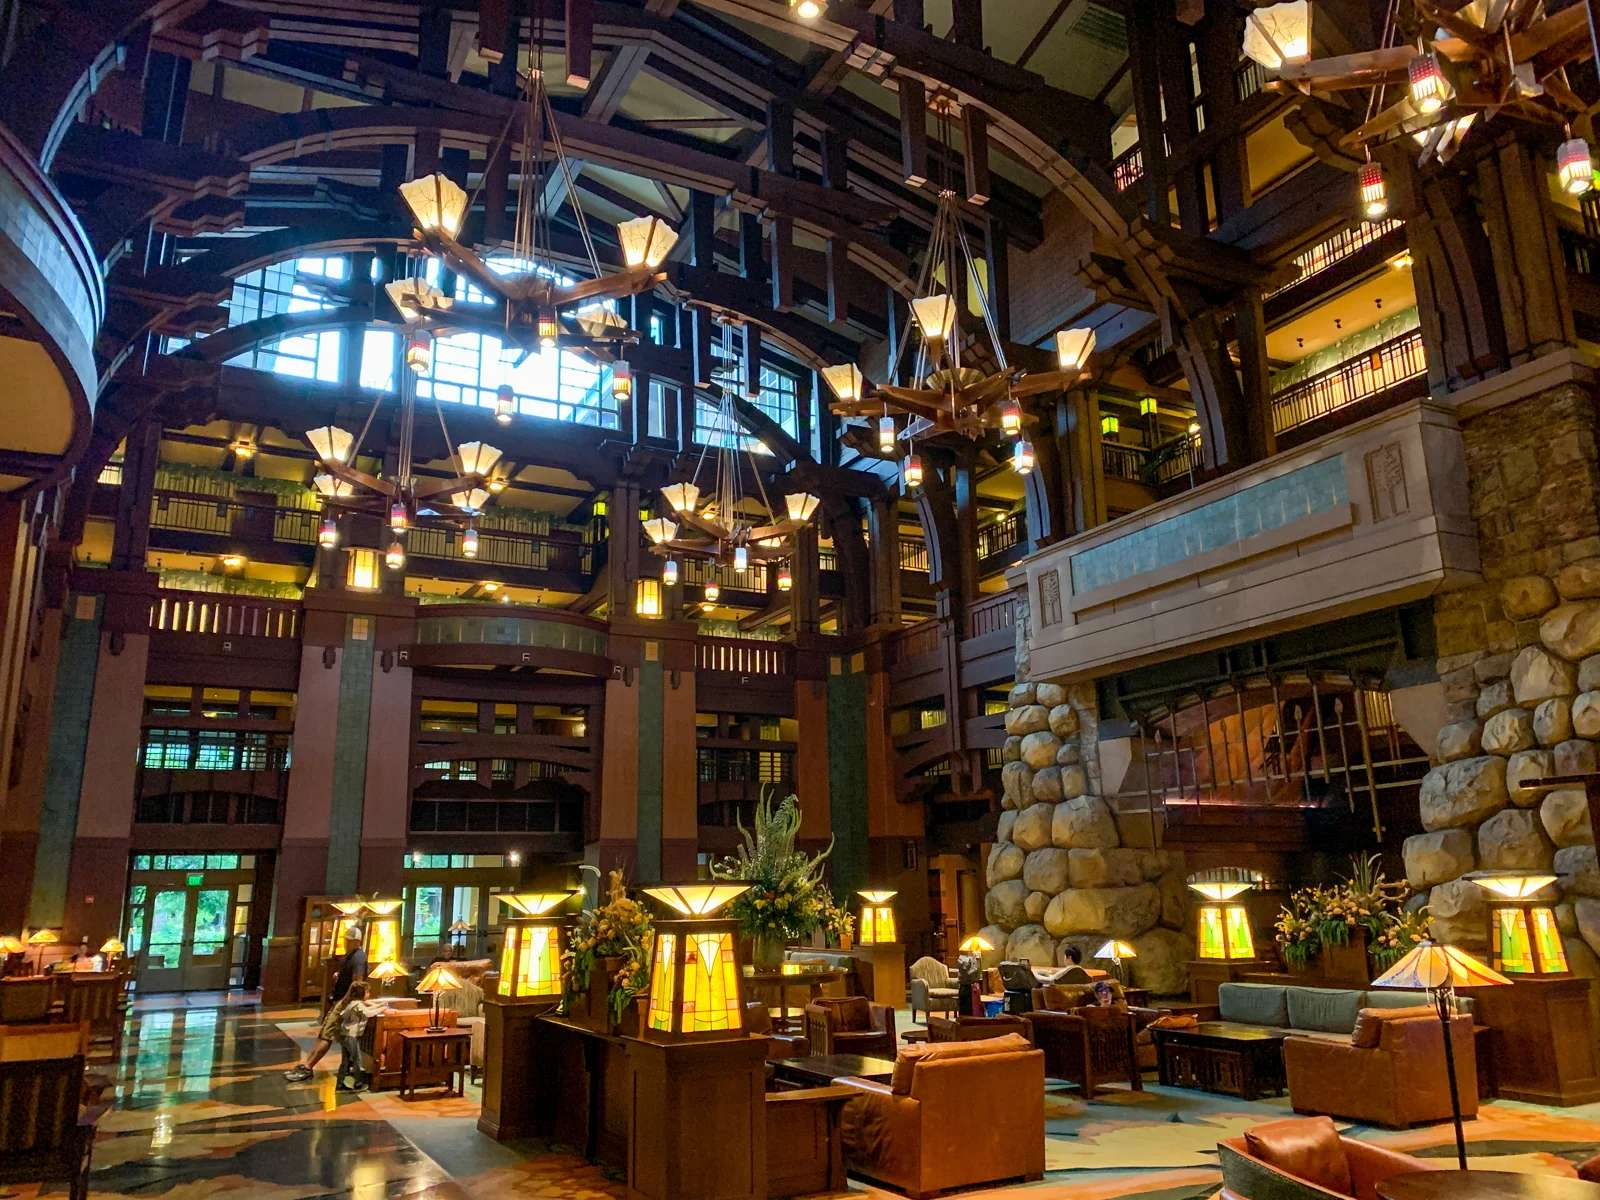 Disneyland Grand Californian Hotel Lobby